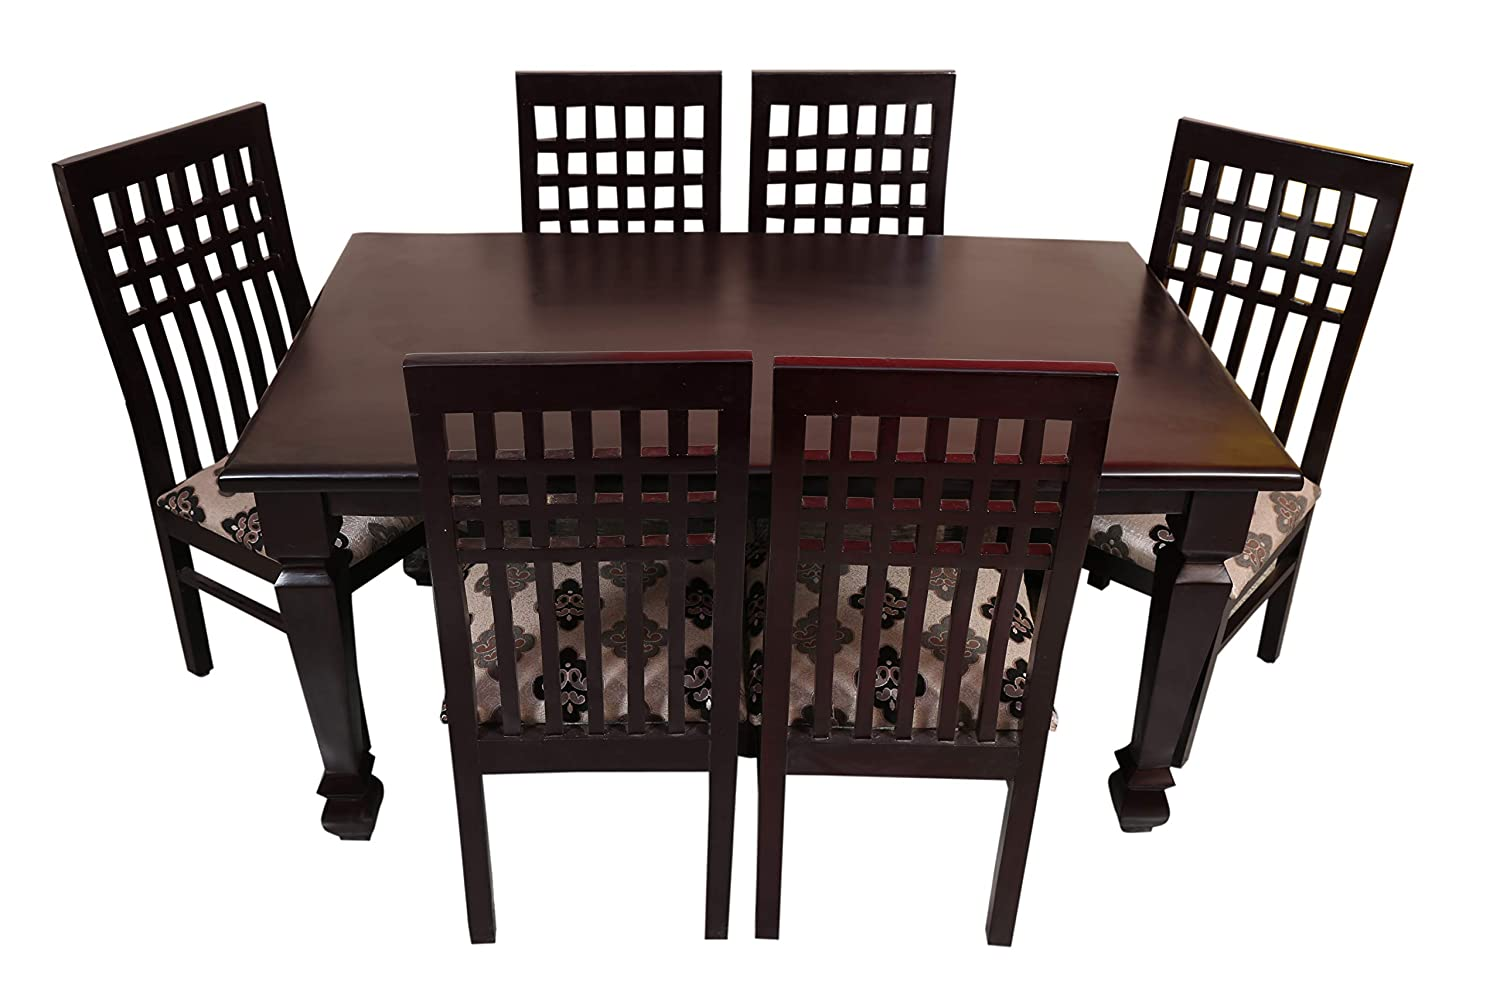 Sapna house solid wood 6 seater dining table setteak woodmahogany coloravailable in both glossy and matt finish amazon in home kitchen